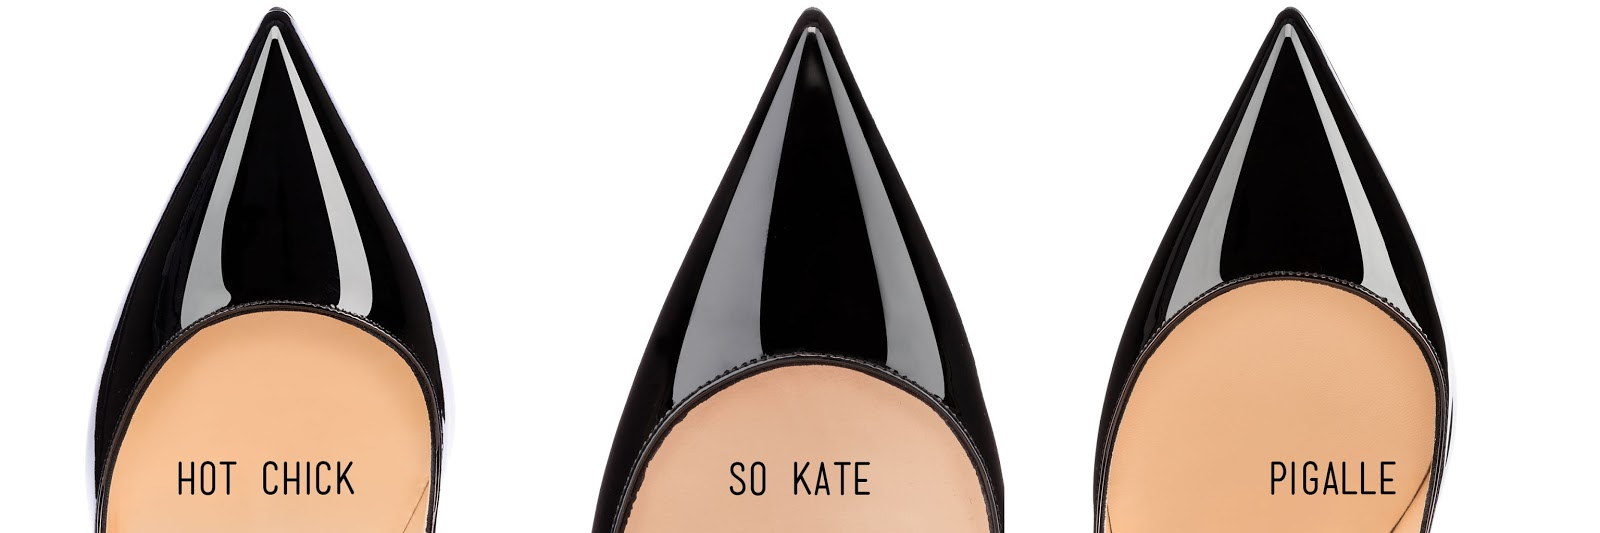 christian louboutin so kate and pigalle